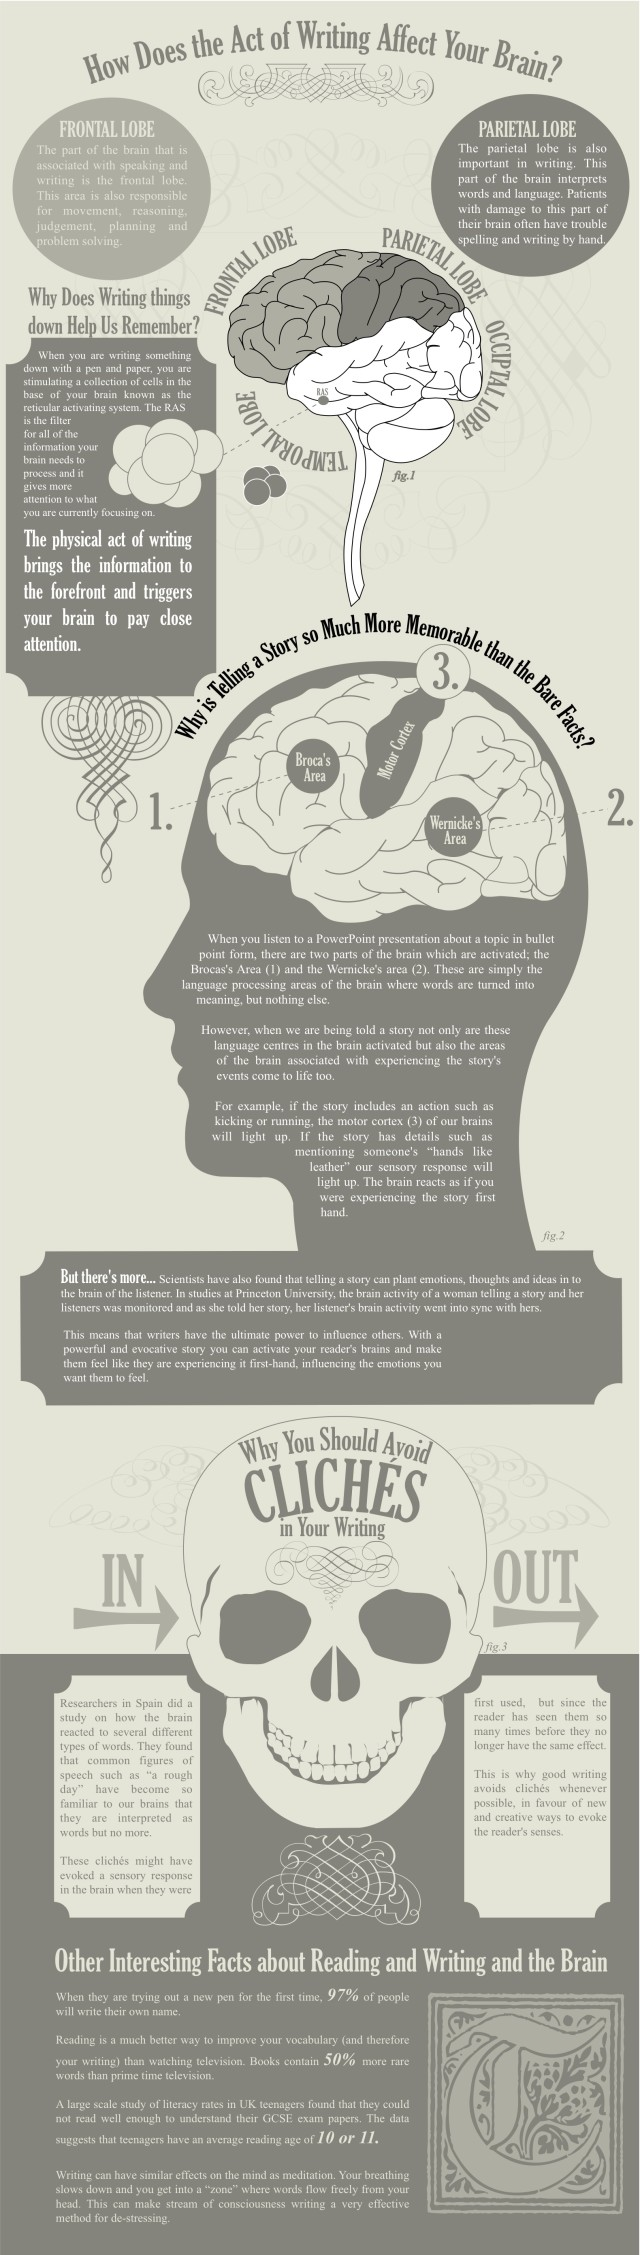 Wrting, Stories and your Brain